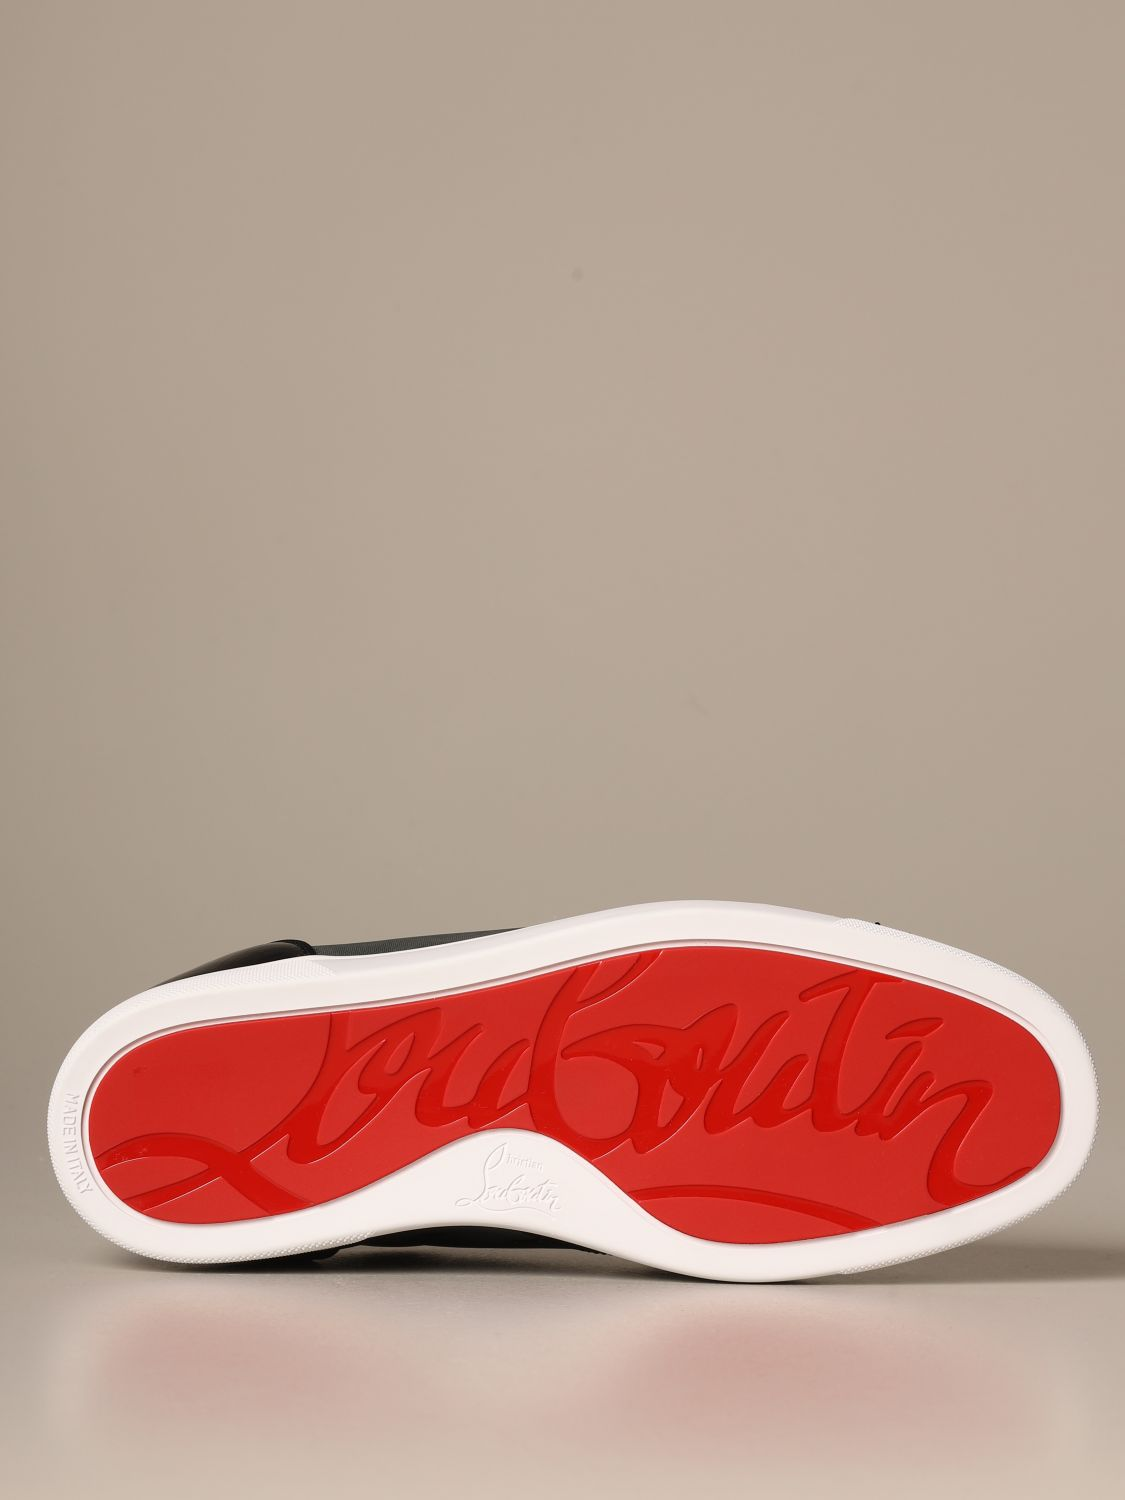 louboutin chaussure homme rouge